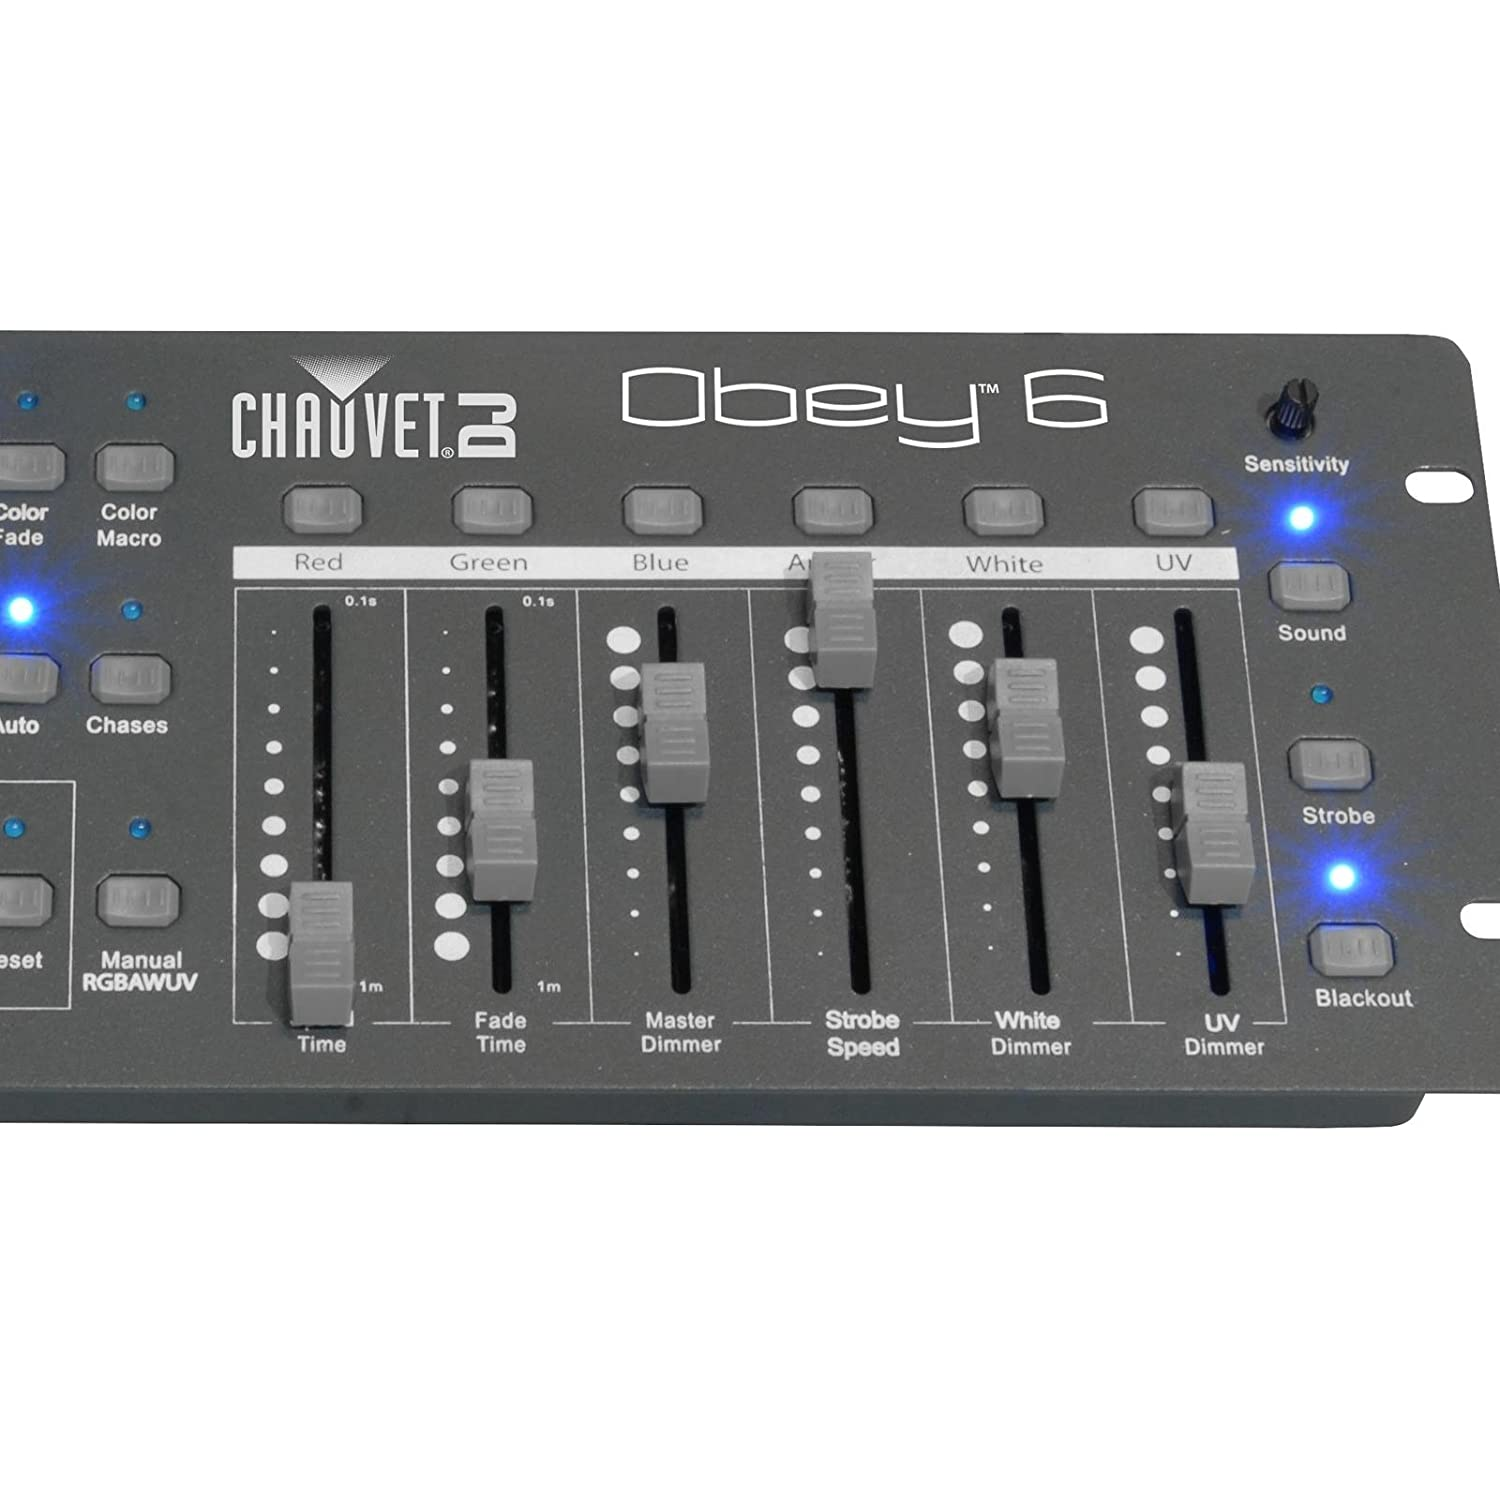 CHAUVET DJ Obey 6 Compact Universal LED Controller: Amazon.co.uk: Musical  Instruments